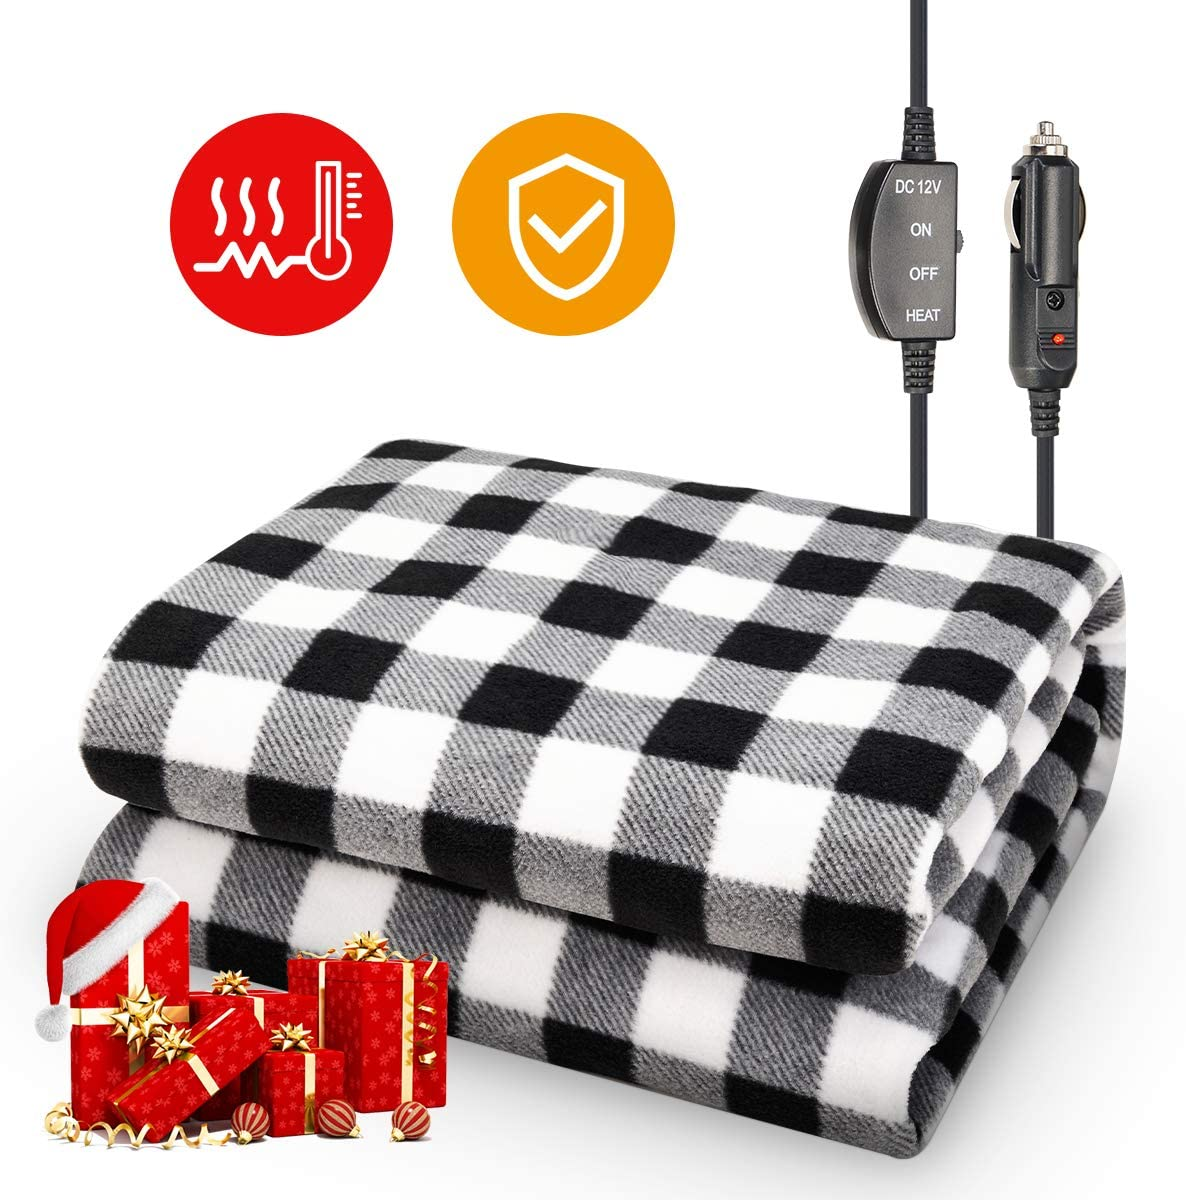 "JOYTUTUS Car Heated Blanket, 12V Fleece Electric Car Blanket, Emergency Heating Throw Blanket Plugs in Cigarette Lighter, Heated Travel Blanket Pad Warm Safe Winter for Car Vehicle SUV RV, 59"" * 43"""